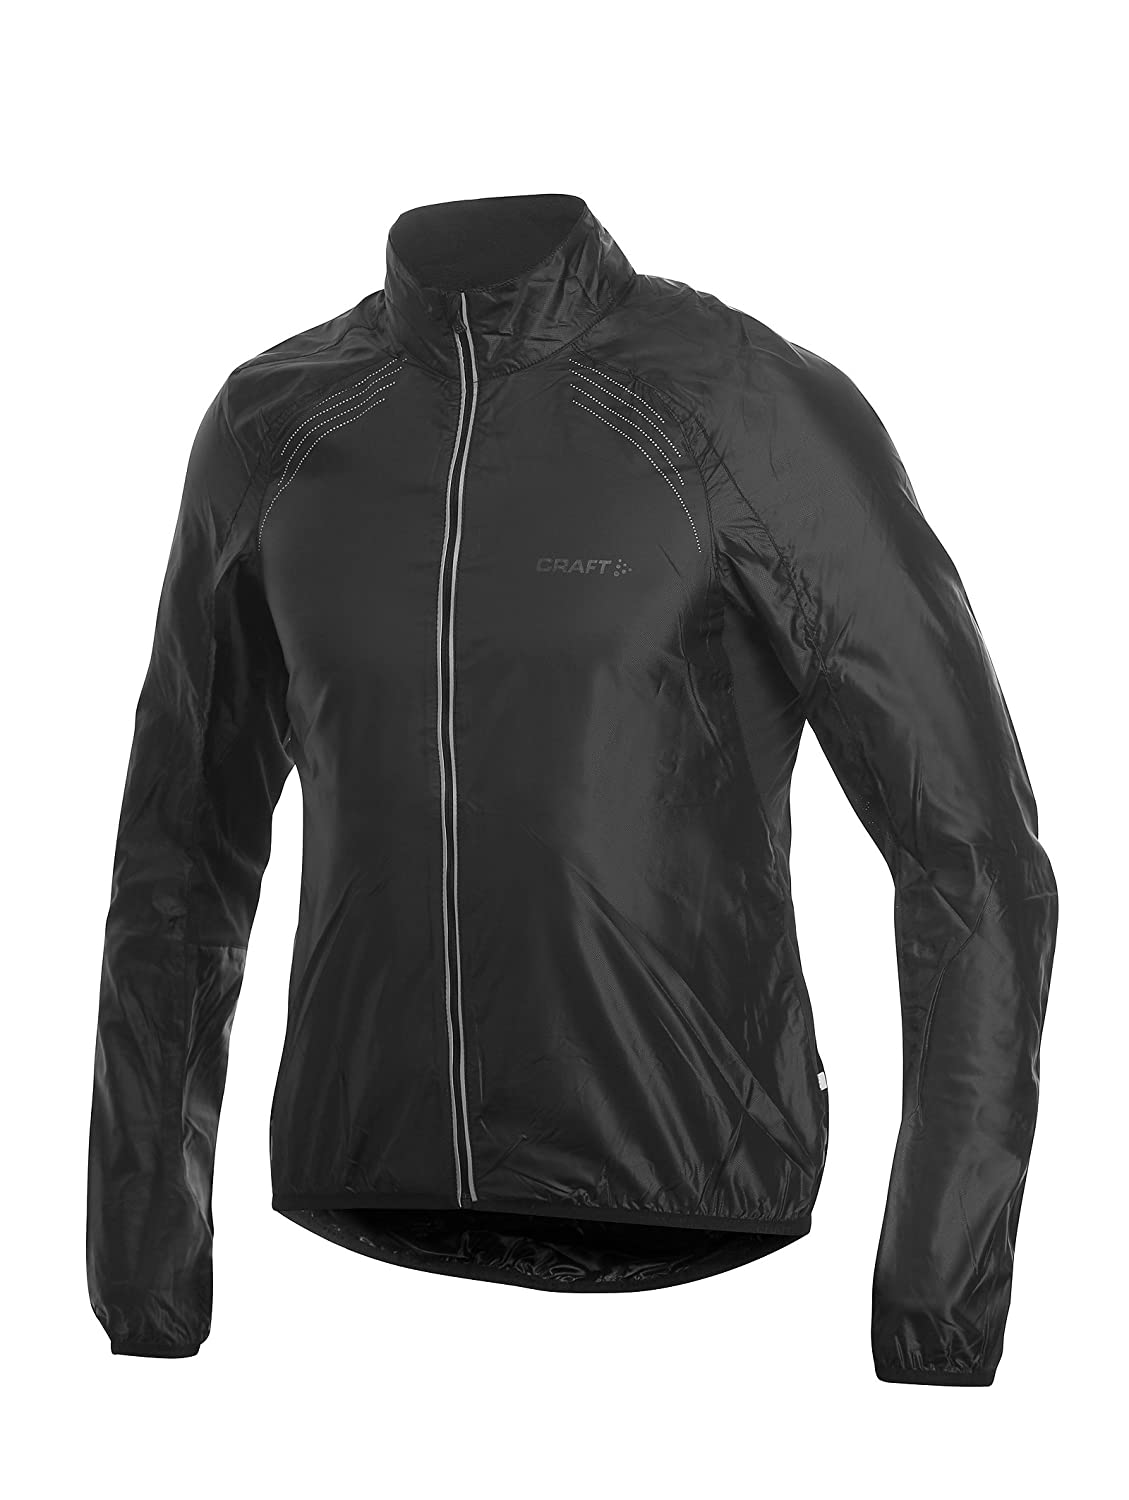 Craft Performance Bike Men's Jacket Light